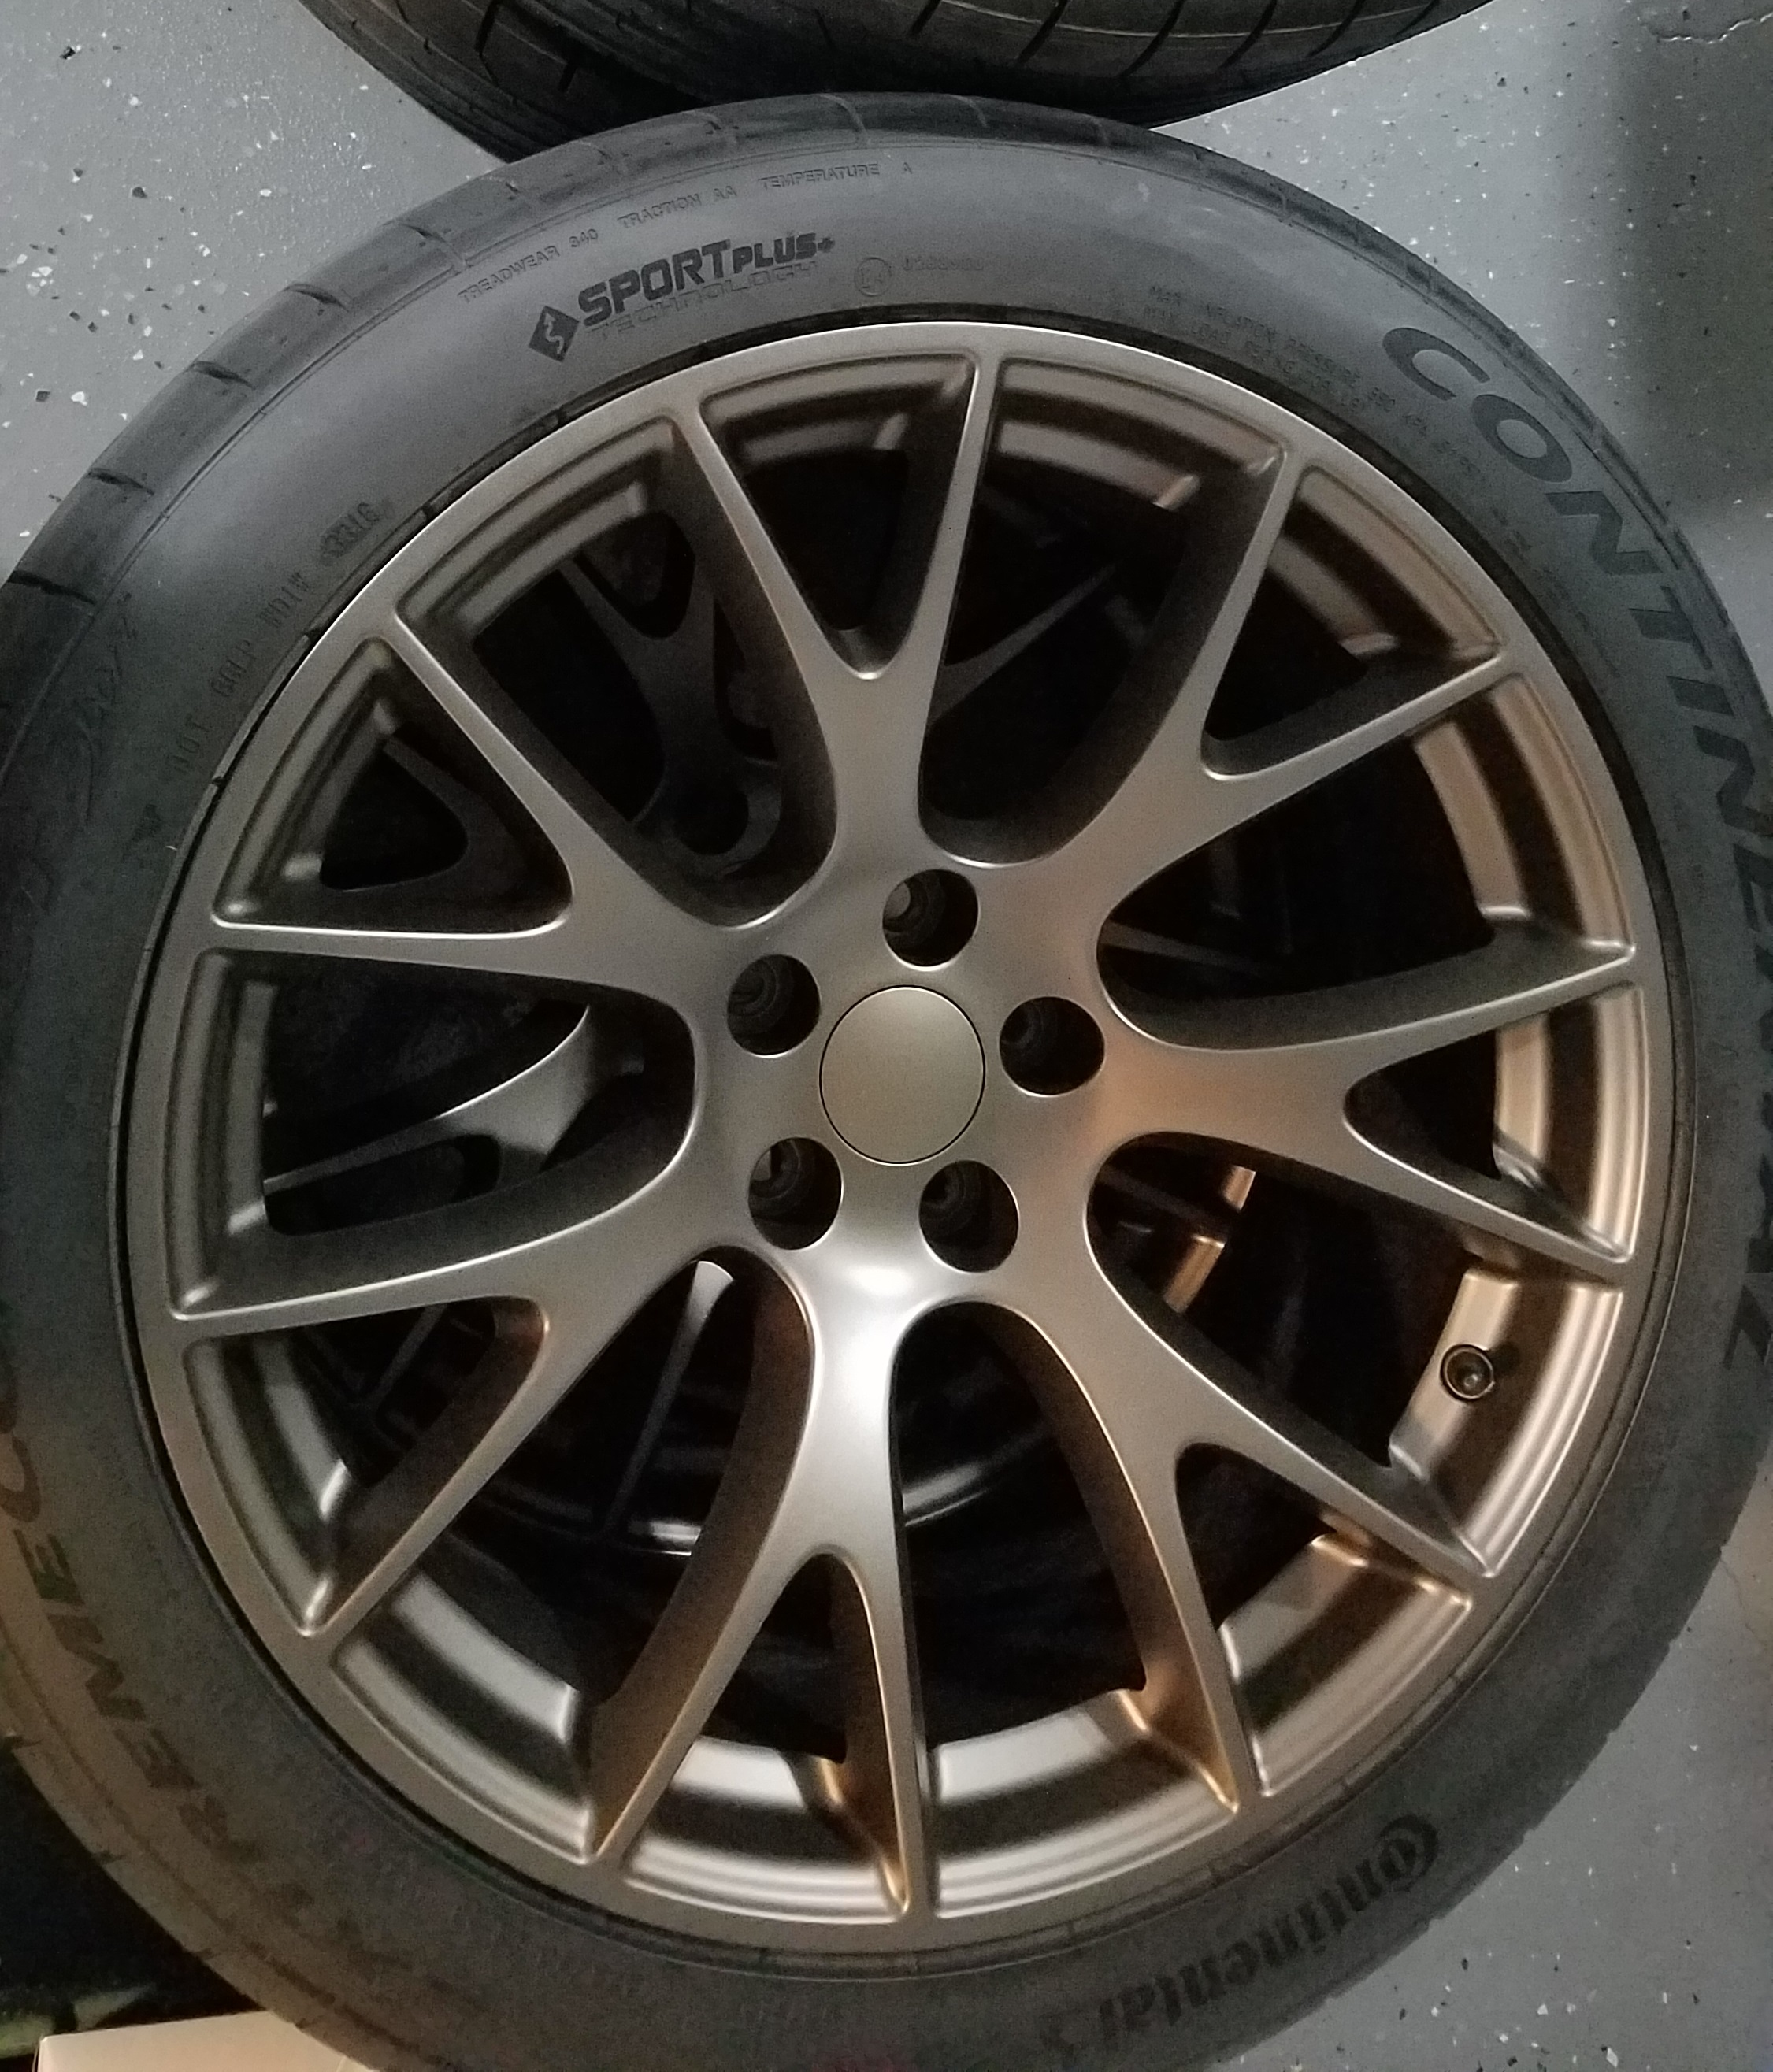 Barely used Hellcat replica 20x9.5/20x10.5 wheel and tire package bronze